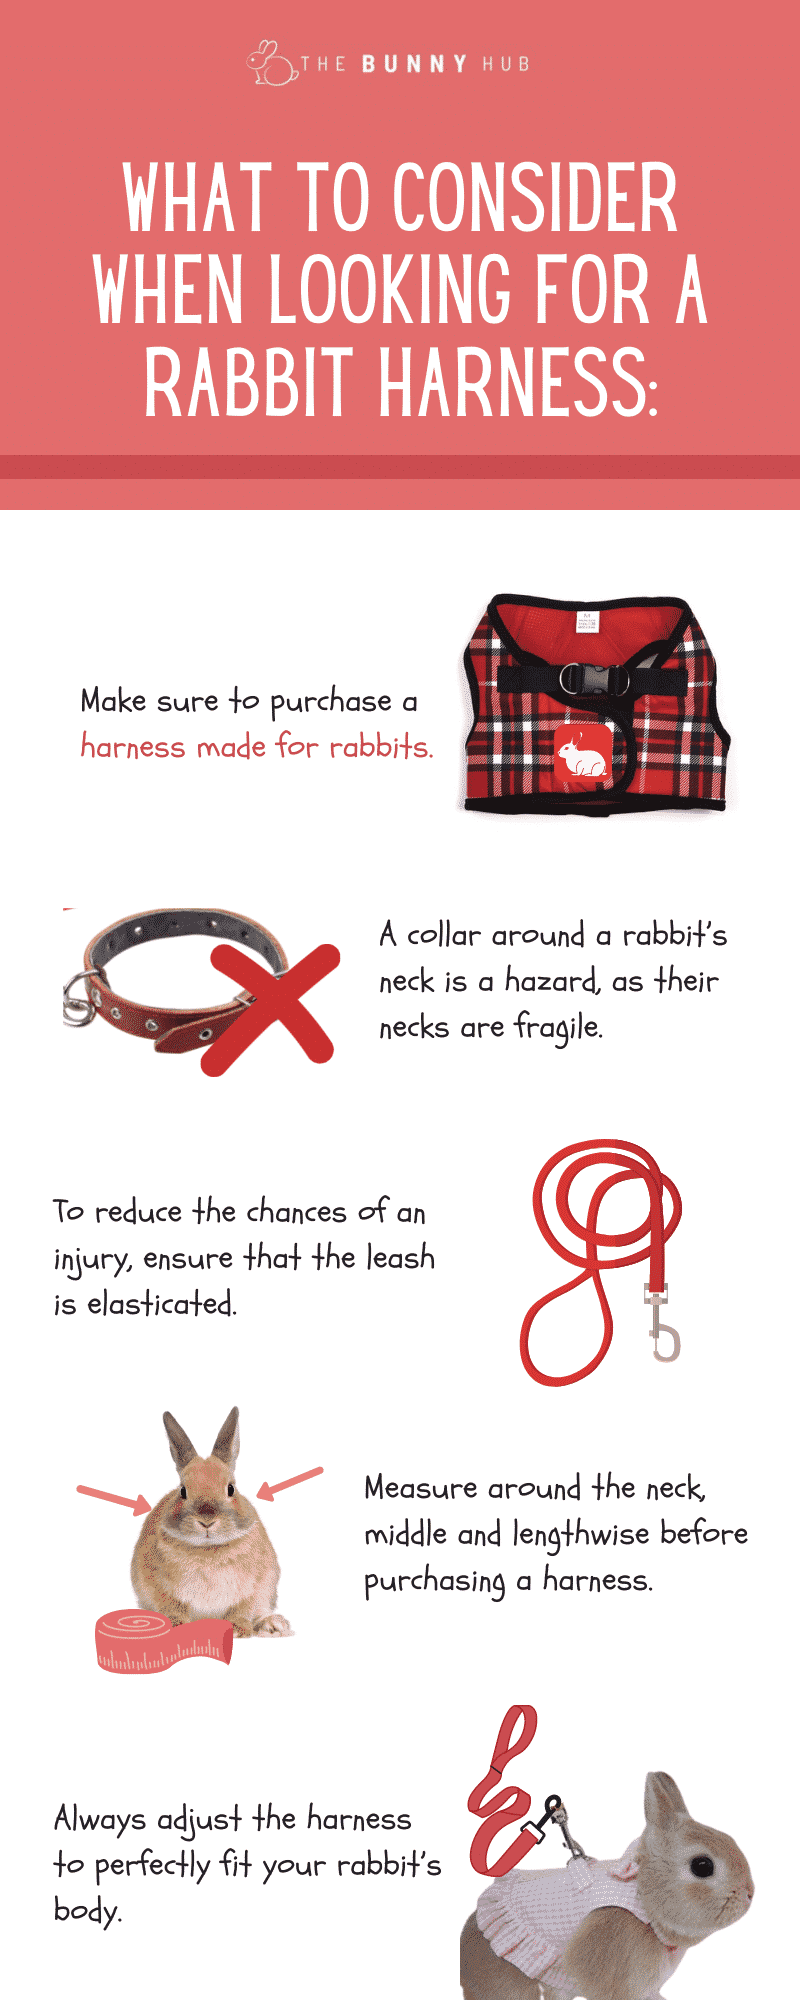 What to consider when looking for a rabbit harness